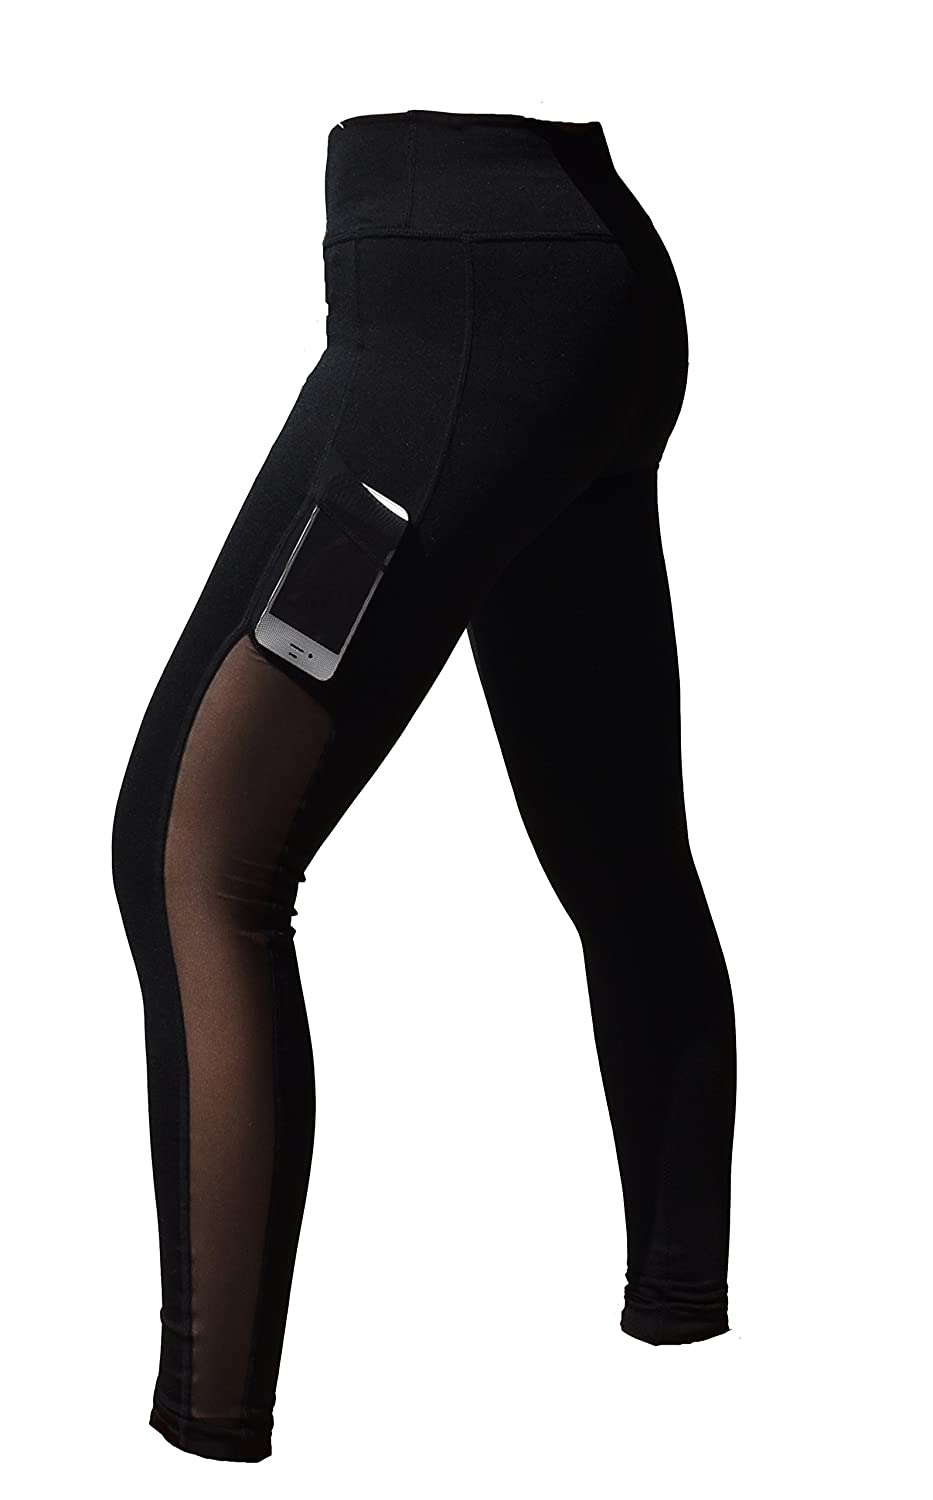 f5c5d13662da6 Amazon.com: Women High Waist Sports Mesh Tights Workout Running Pant Legging  with Side Pocket: Clothing